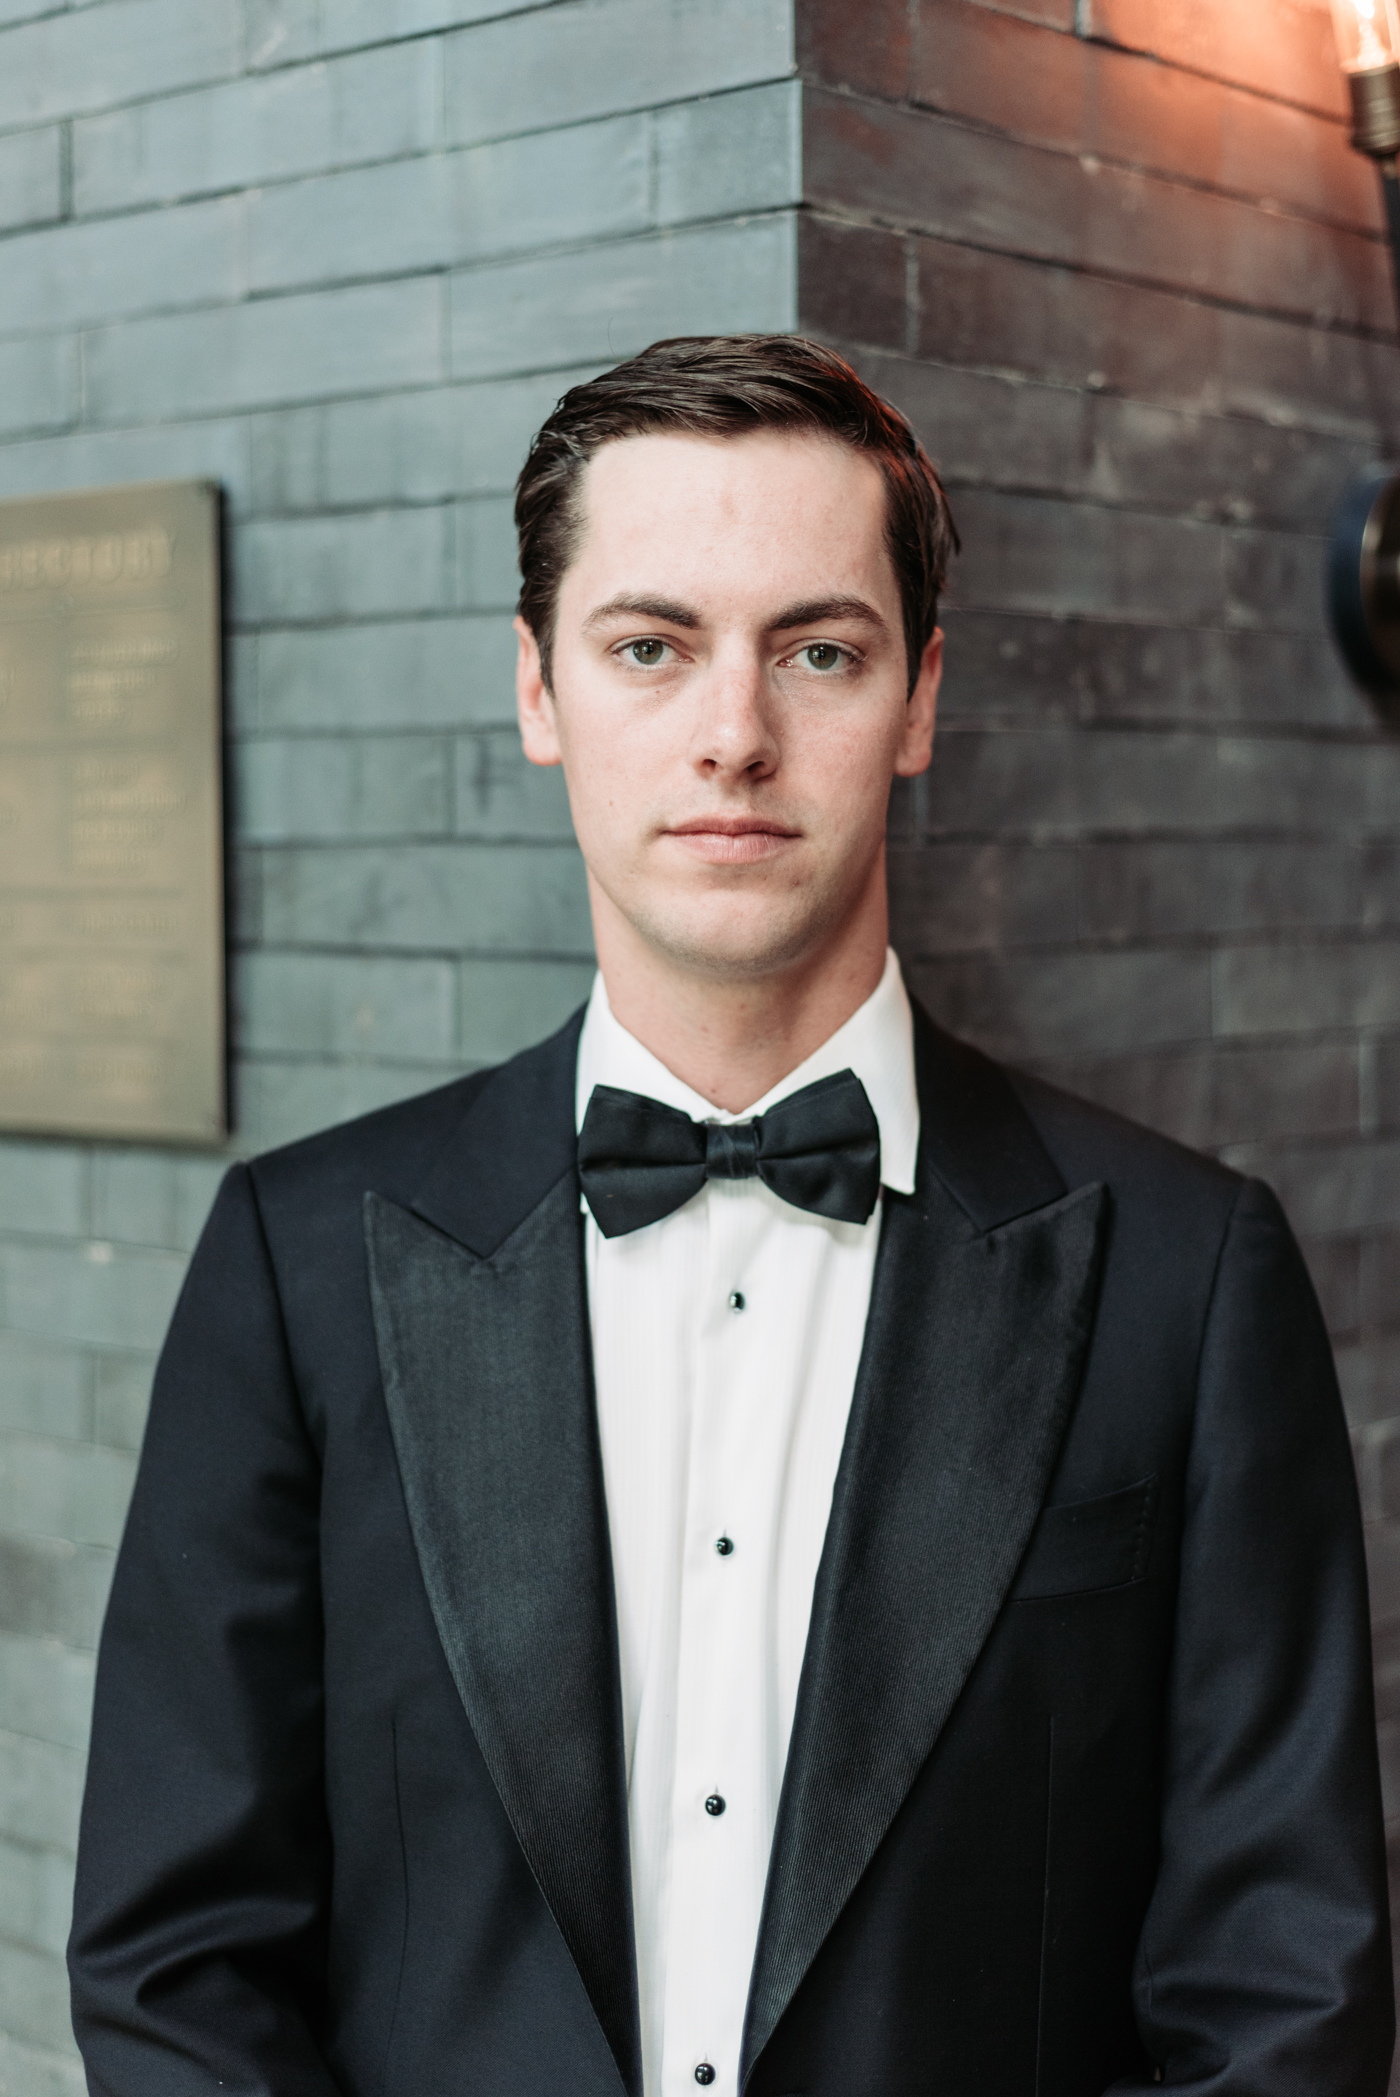 Bennett Brown photography wedding groom suit bow tie